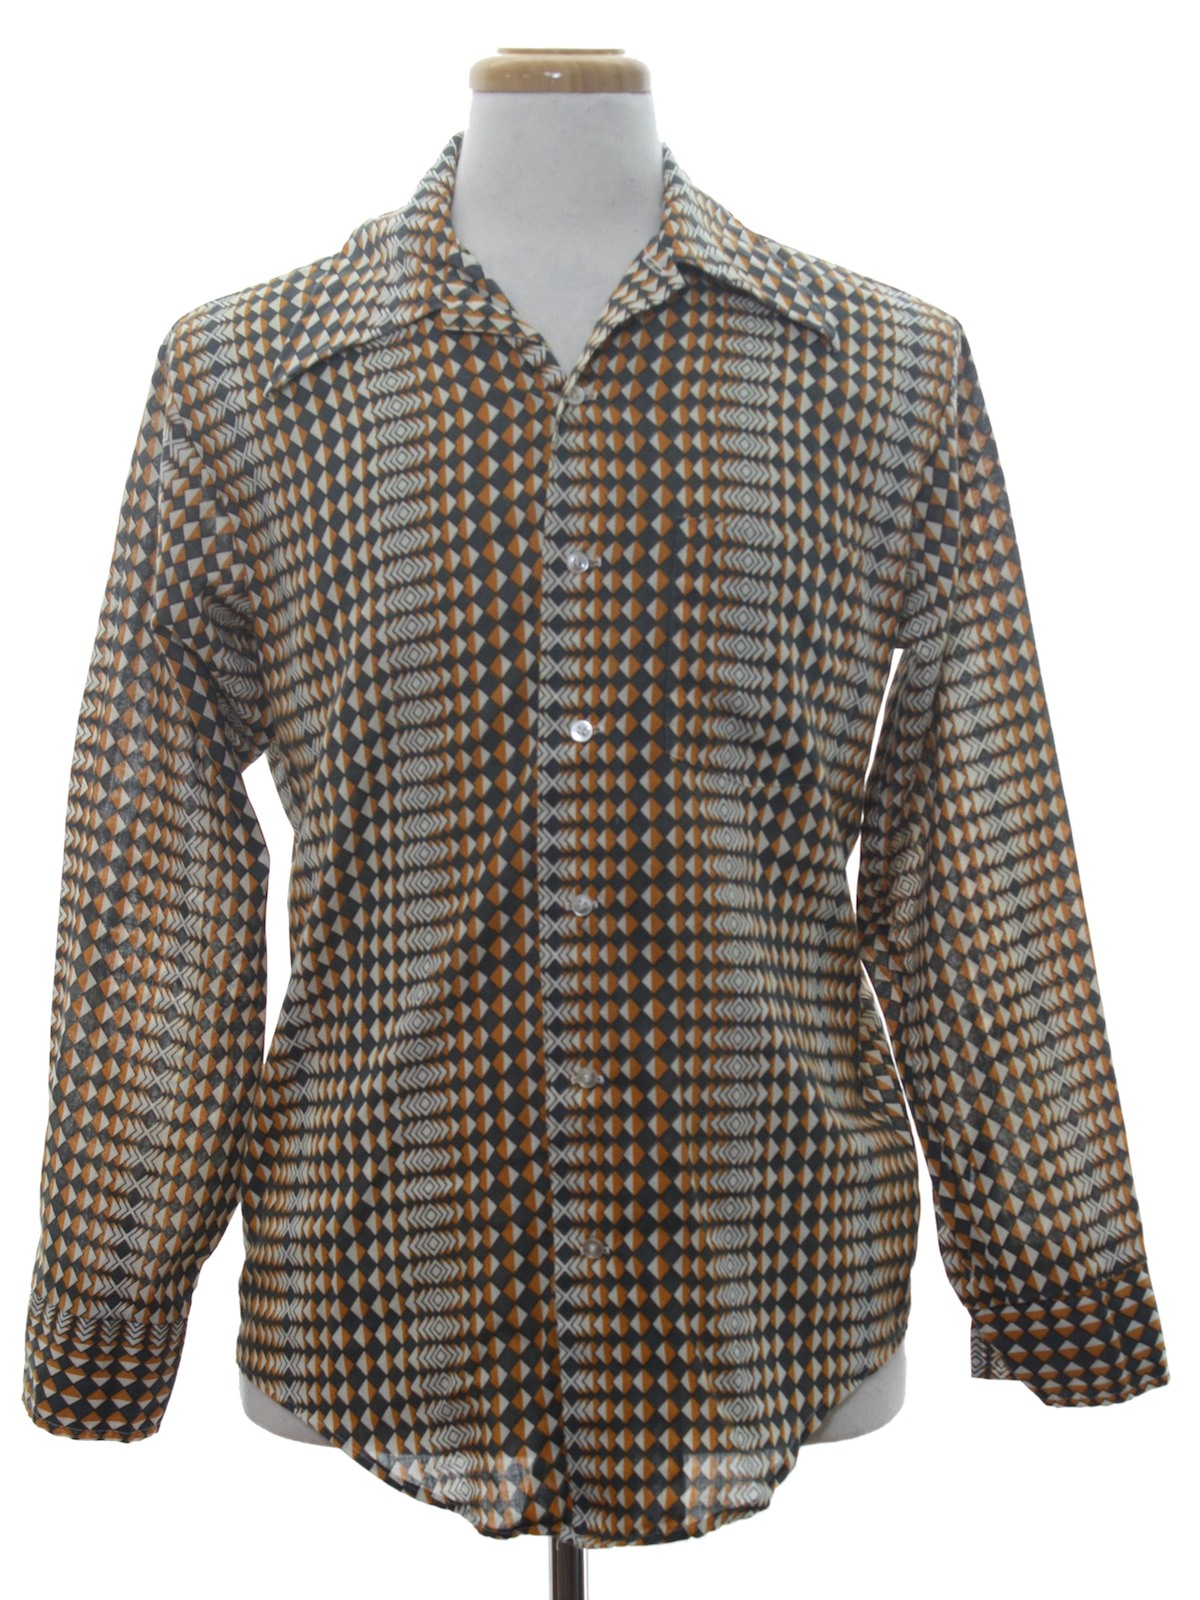 1970s kmart shirt 70s kmart mens brown and white for Kmart button up shirts